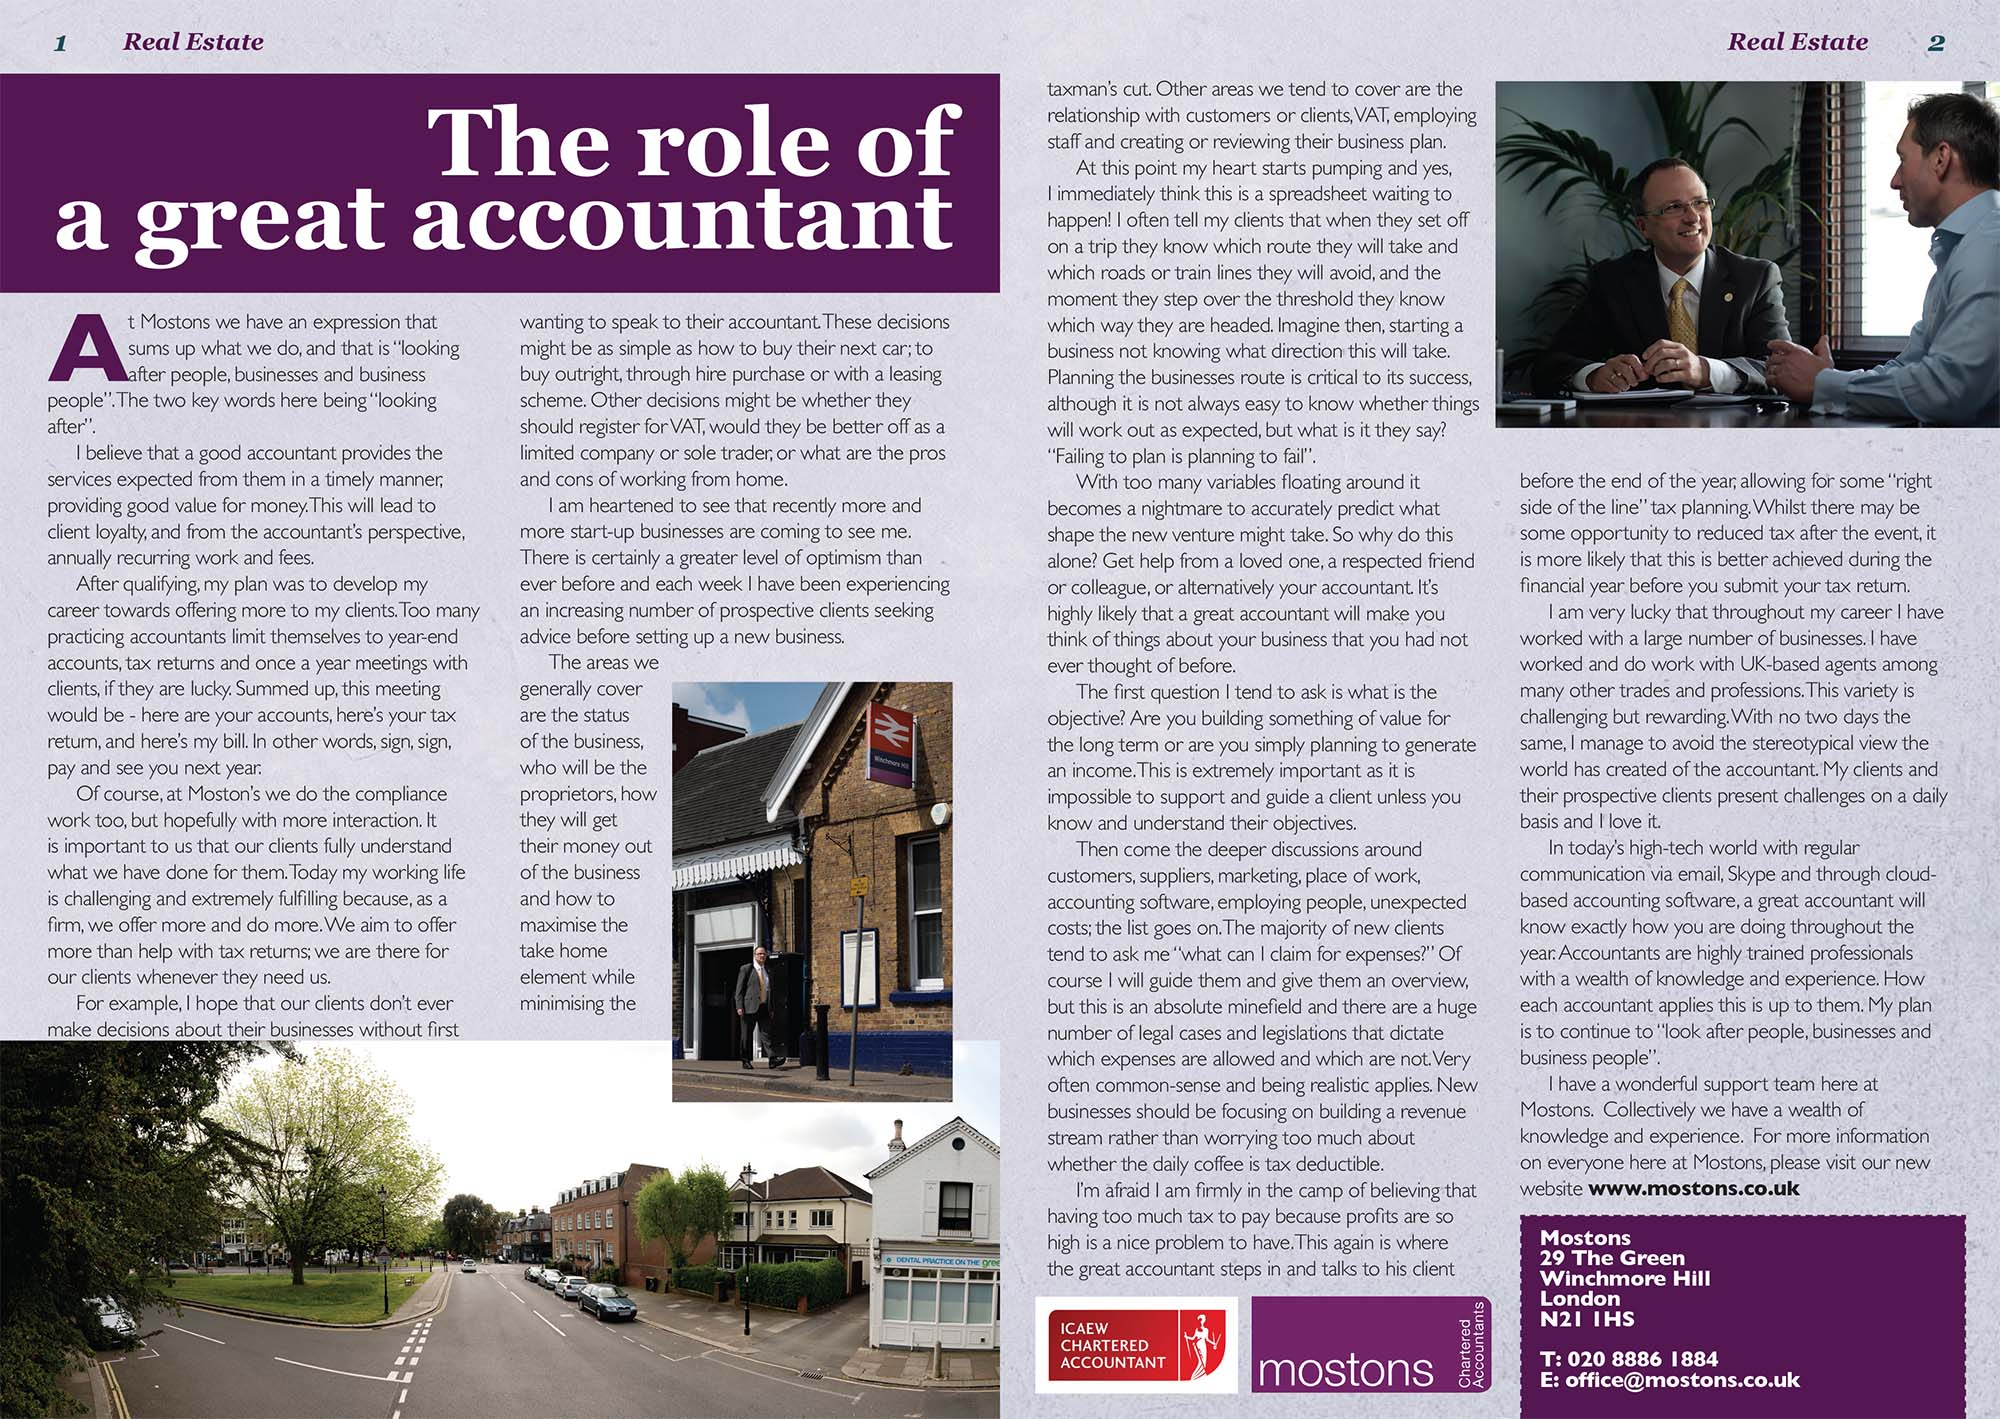 the role of an accountant in While working toward chartered status, provisions for training and study leave play an important role in job satisfaction, as well as salary and the atmosphere of .